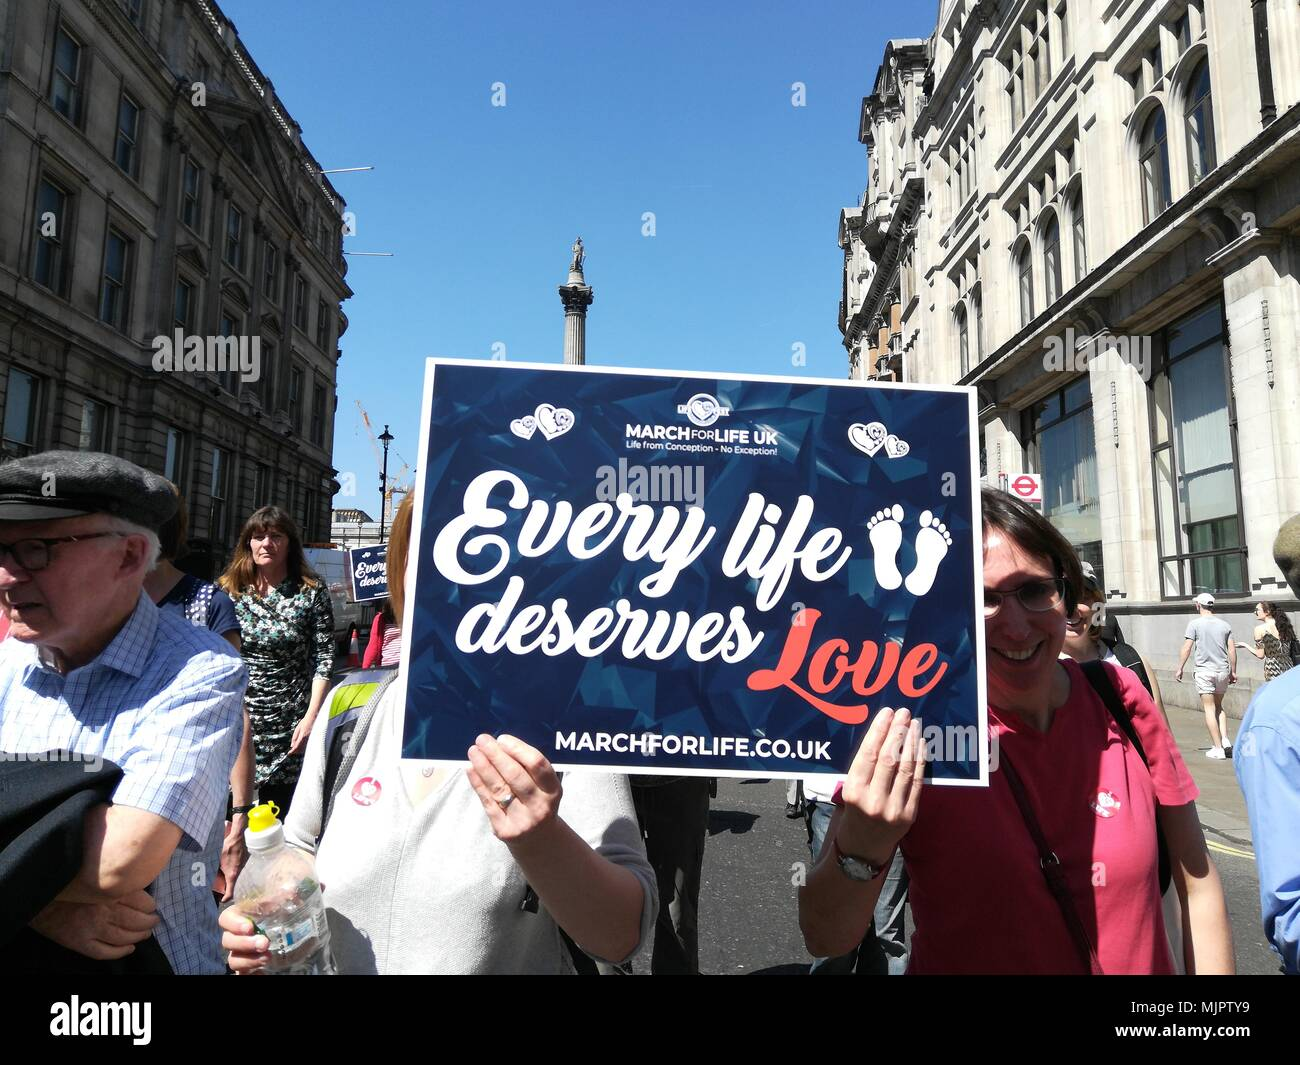 London, UK, 5 May 2018. Rally against abortions held on Whitehall in London Credit: Nastia M/Alamy Live News Stock Photo